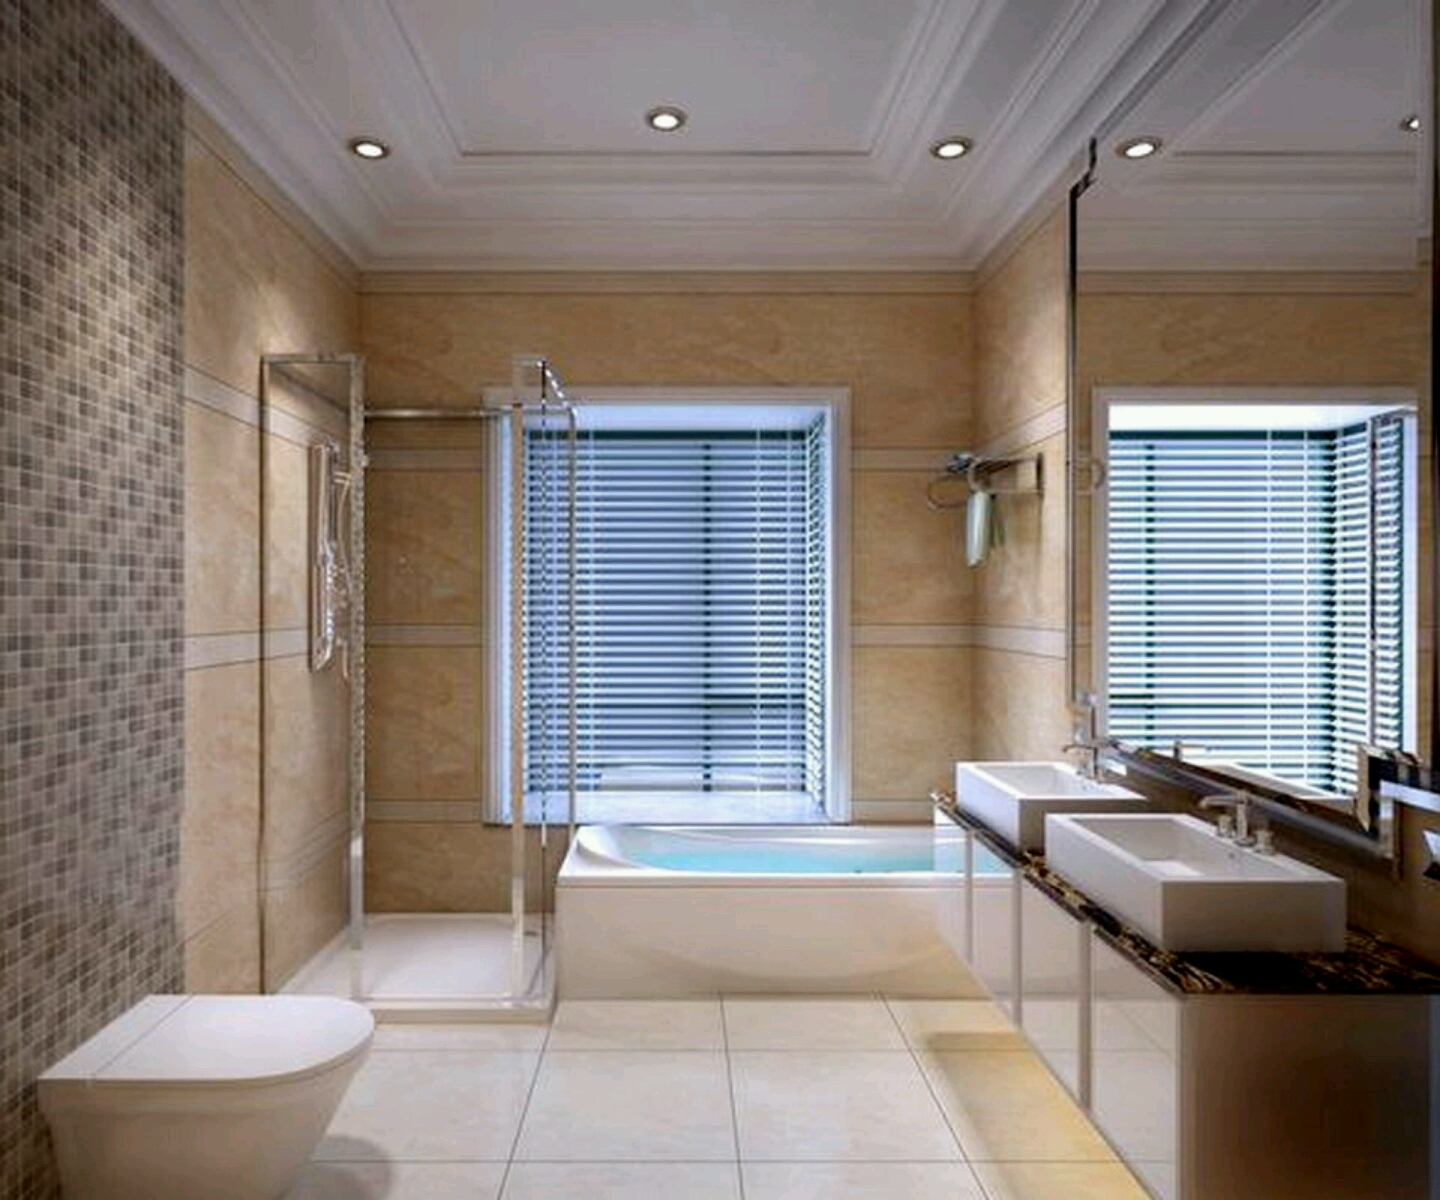 Modern bathrooms best designs ideas new home designs for Modern bathroom designs for small bathrooms